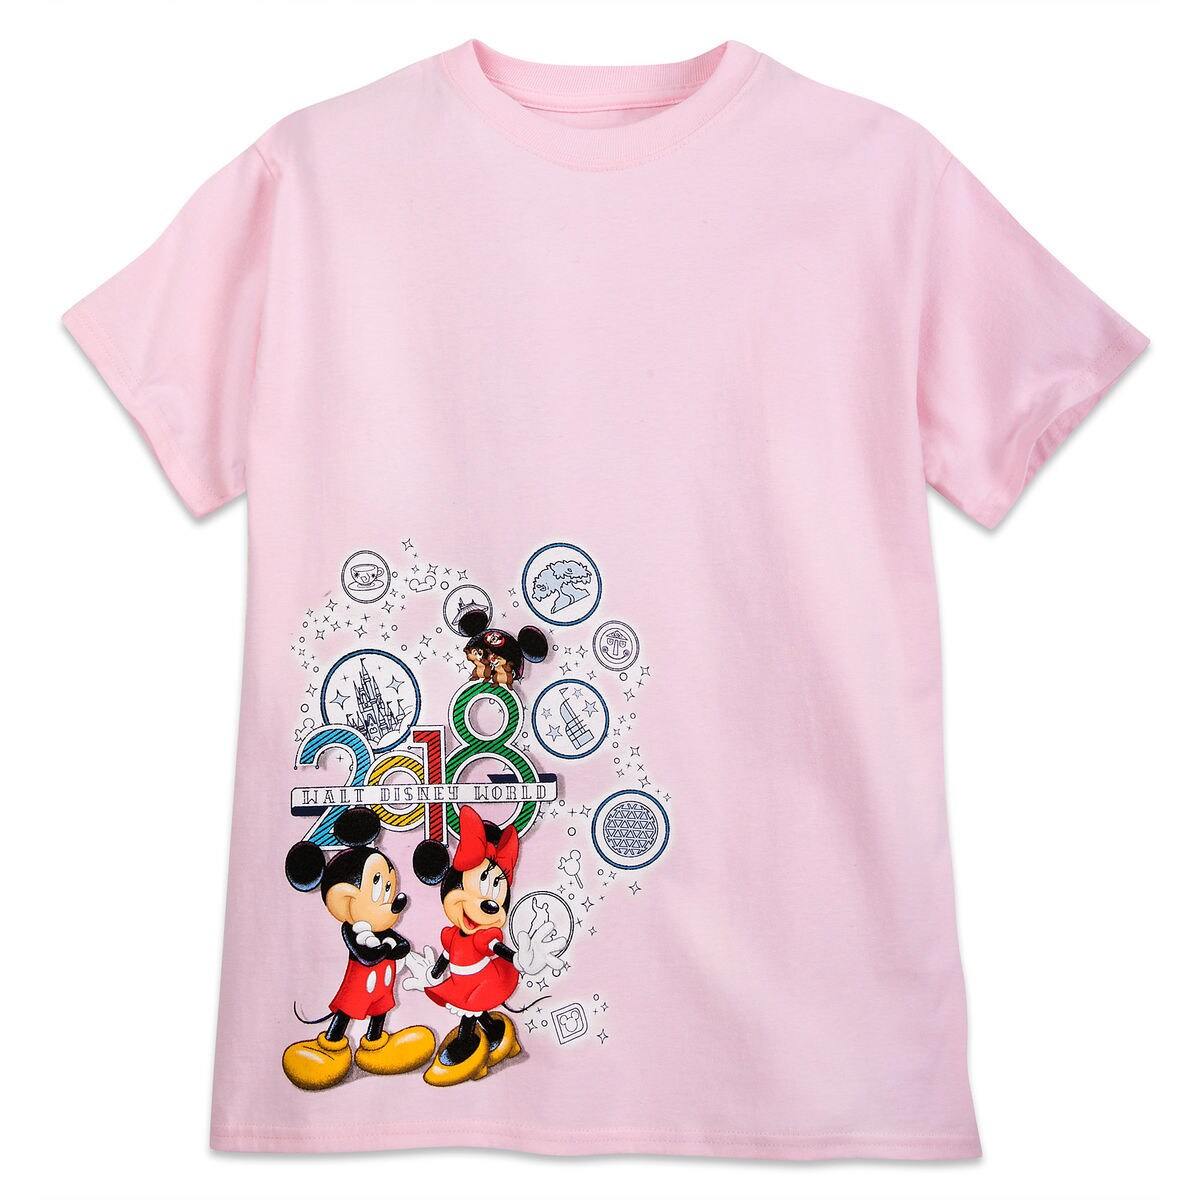 Product Image Of Mickey Mouse And Friends T Shirt For Kids